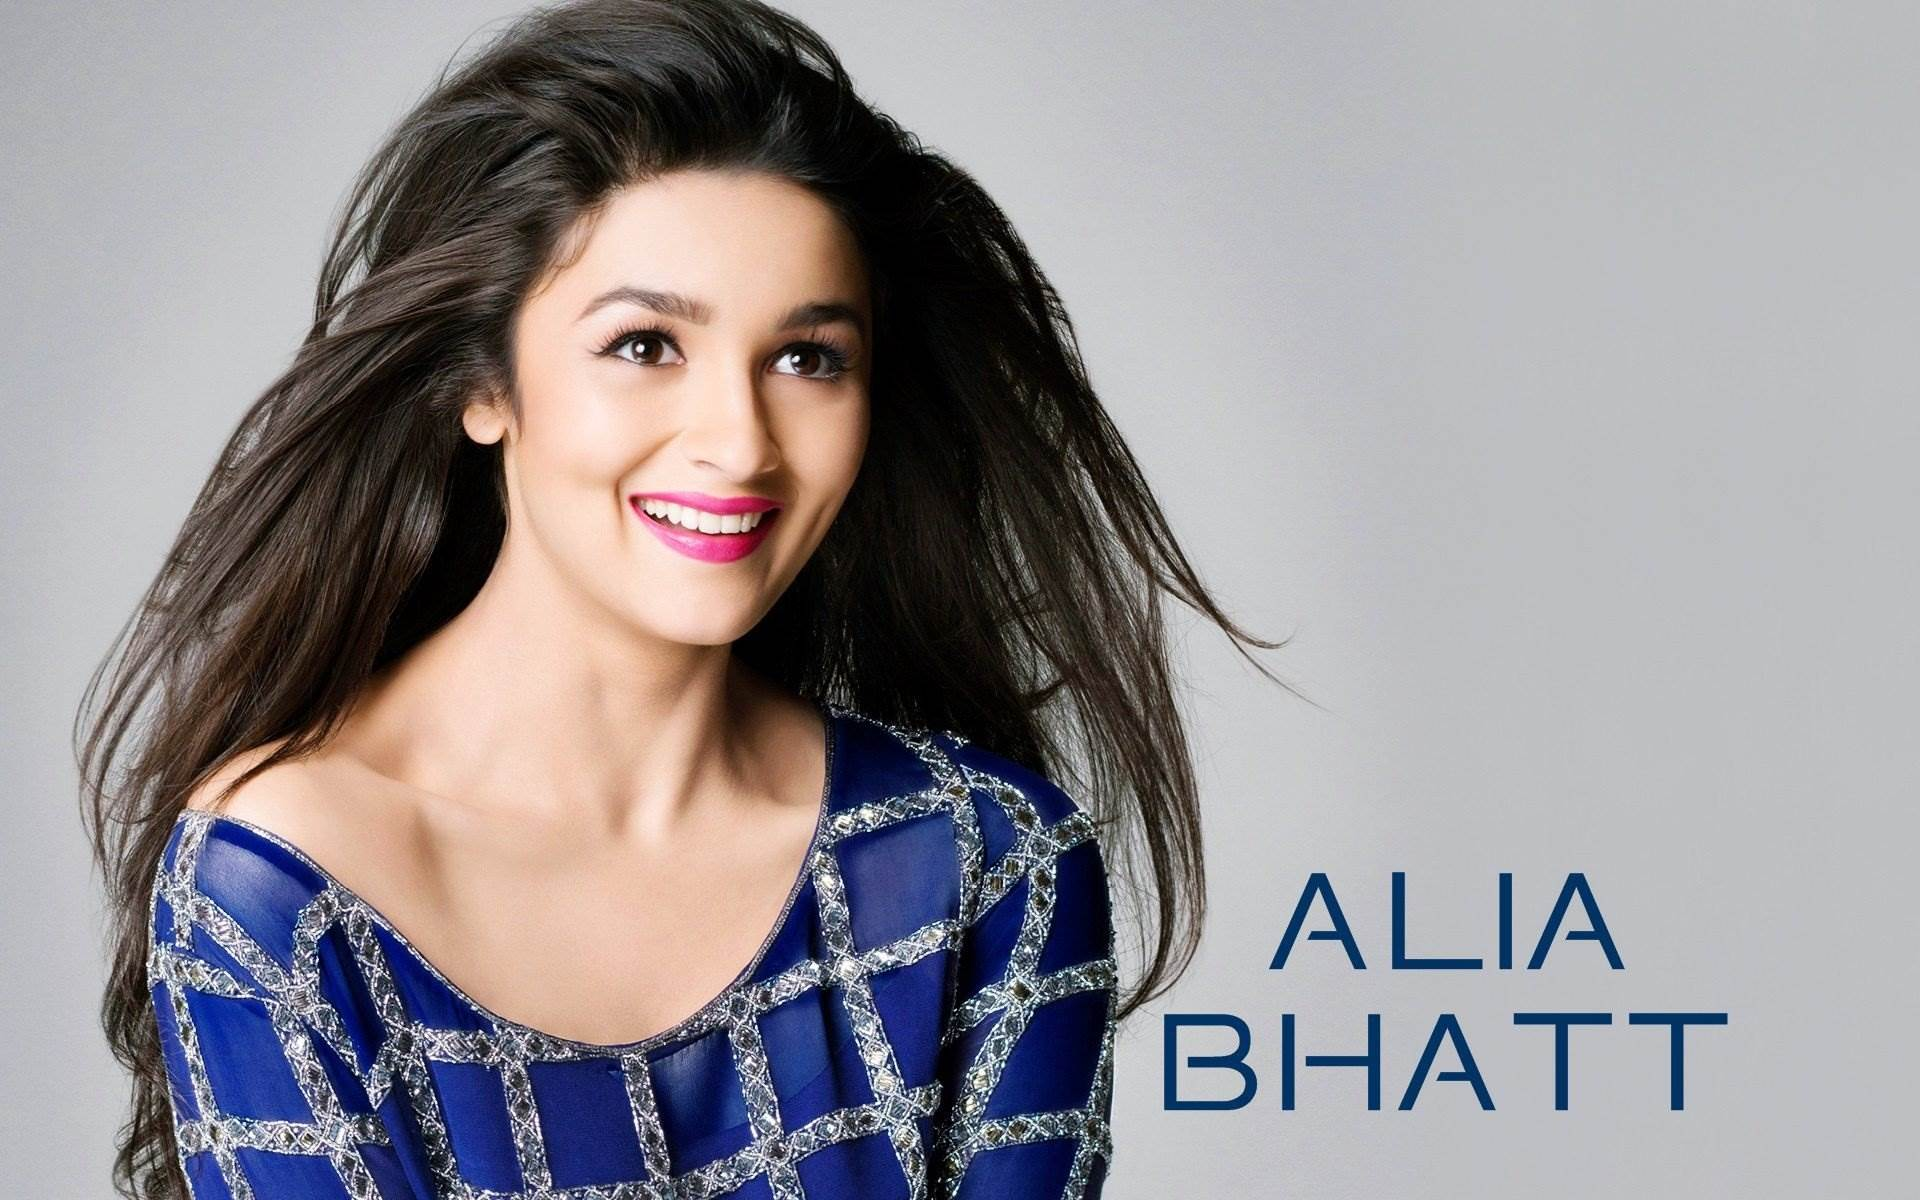 Alia Bhatt Wallpapers HD Best Collection Of Indian Actresss 1920x1200